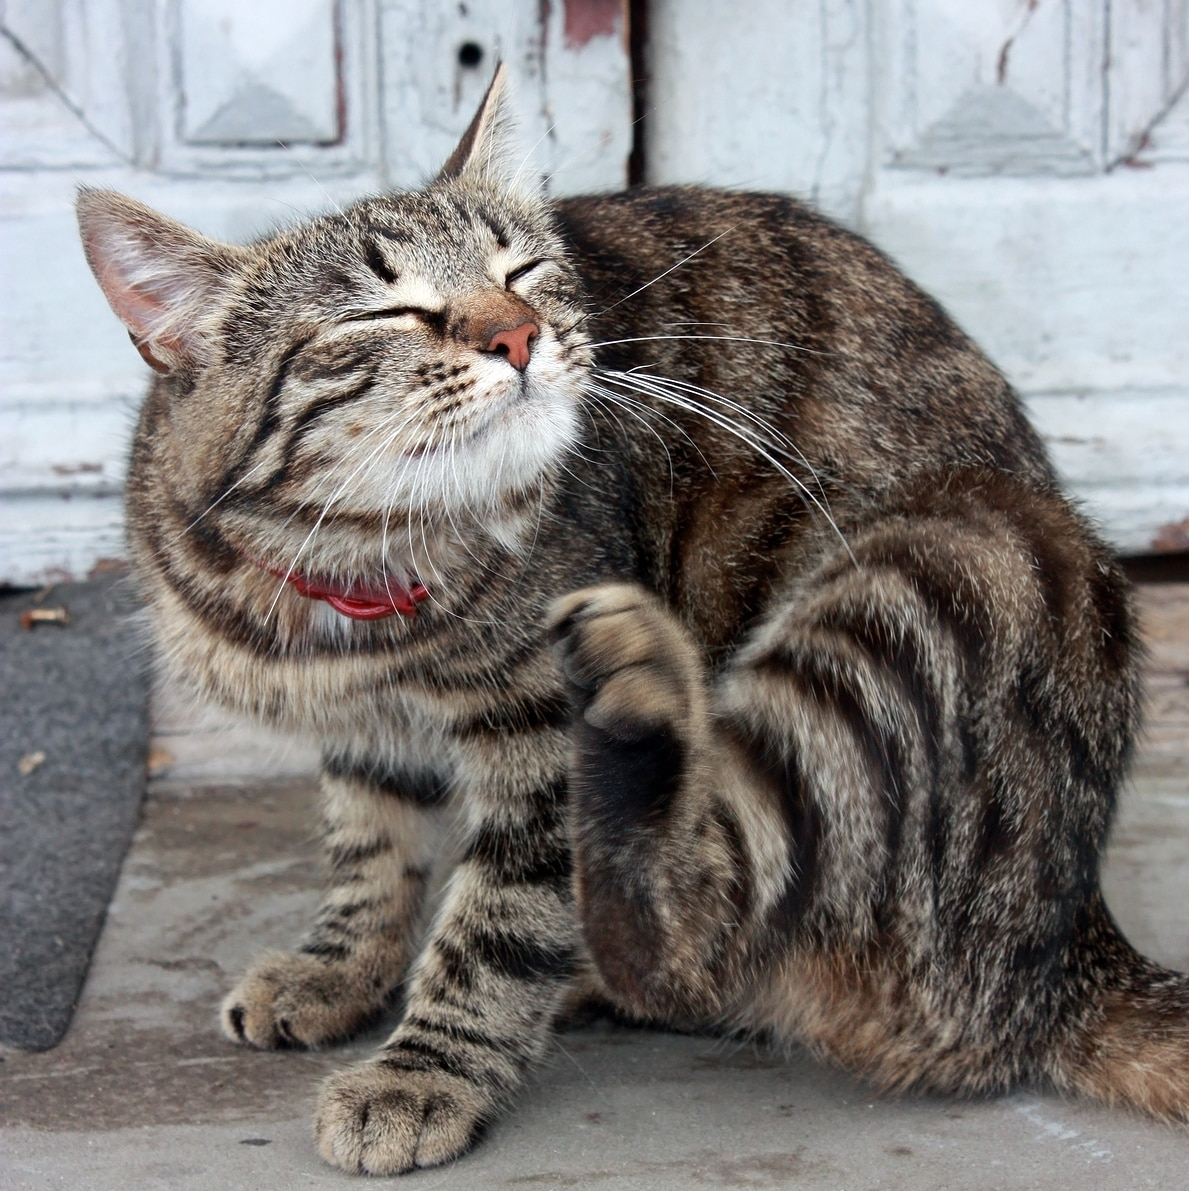 Striped cat in red collar scratches ear.